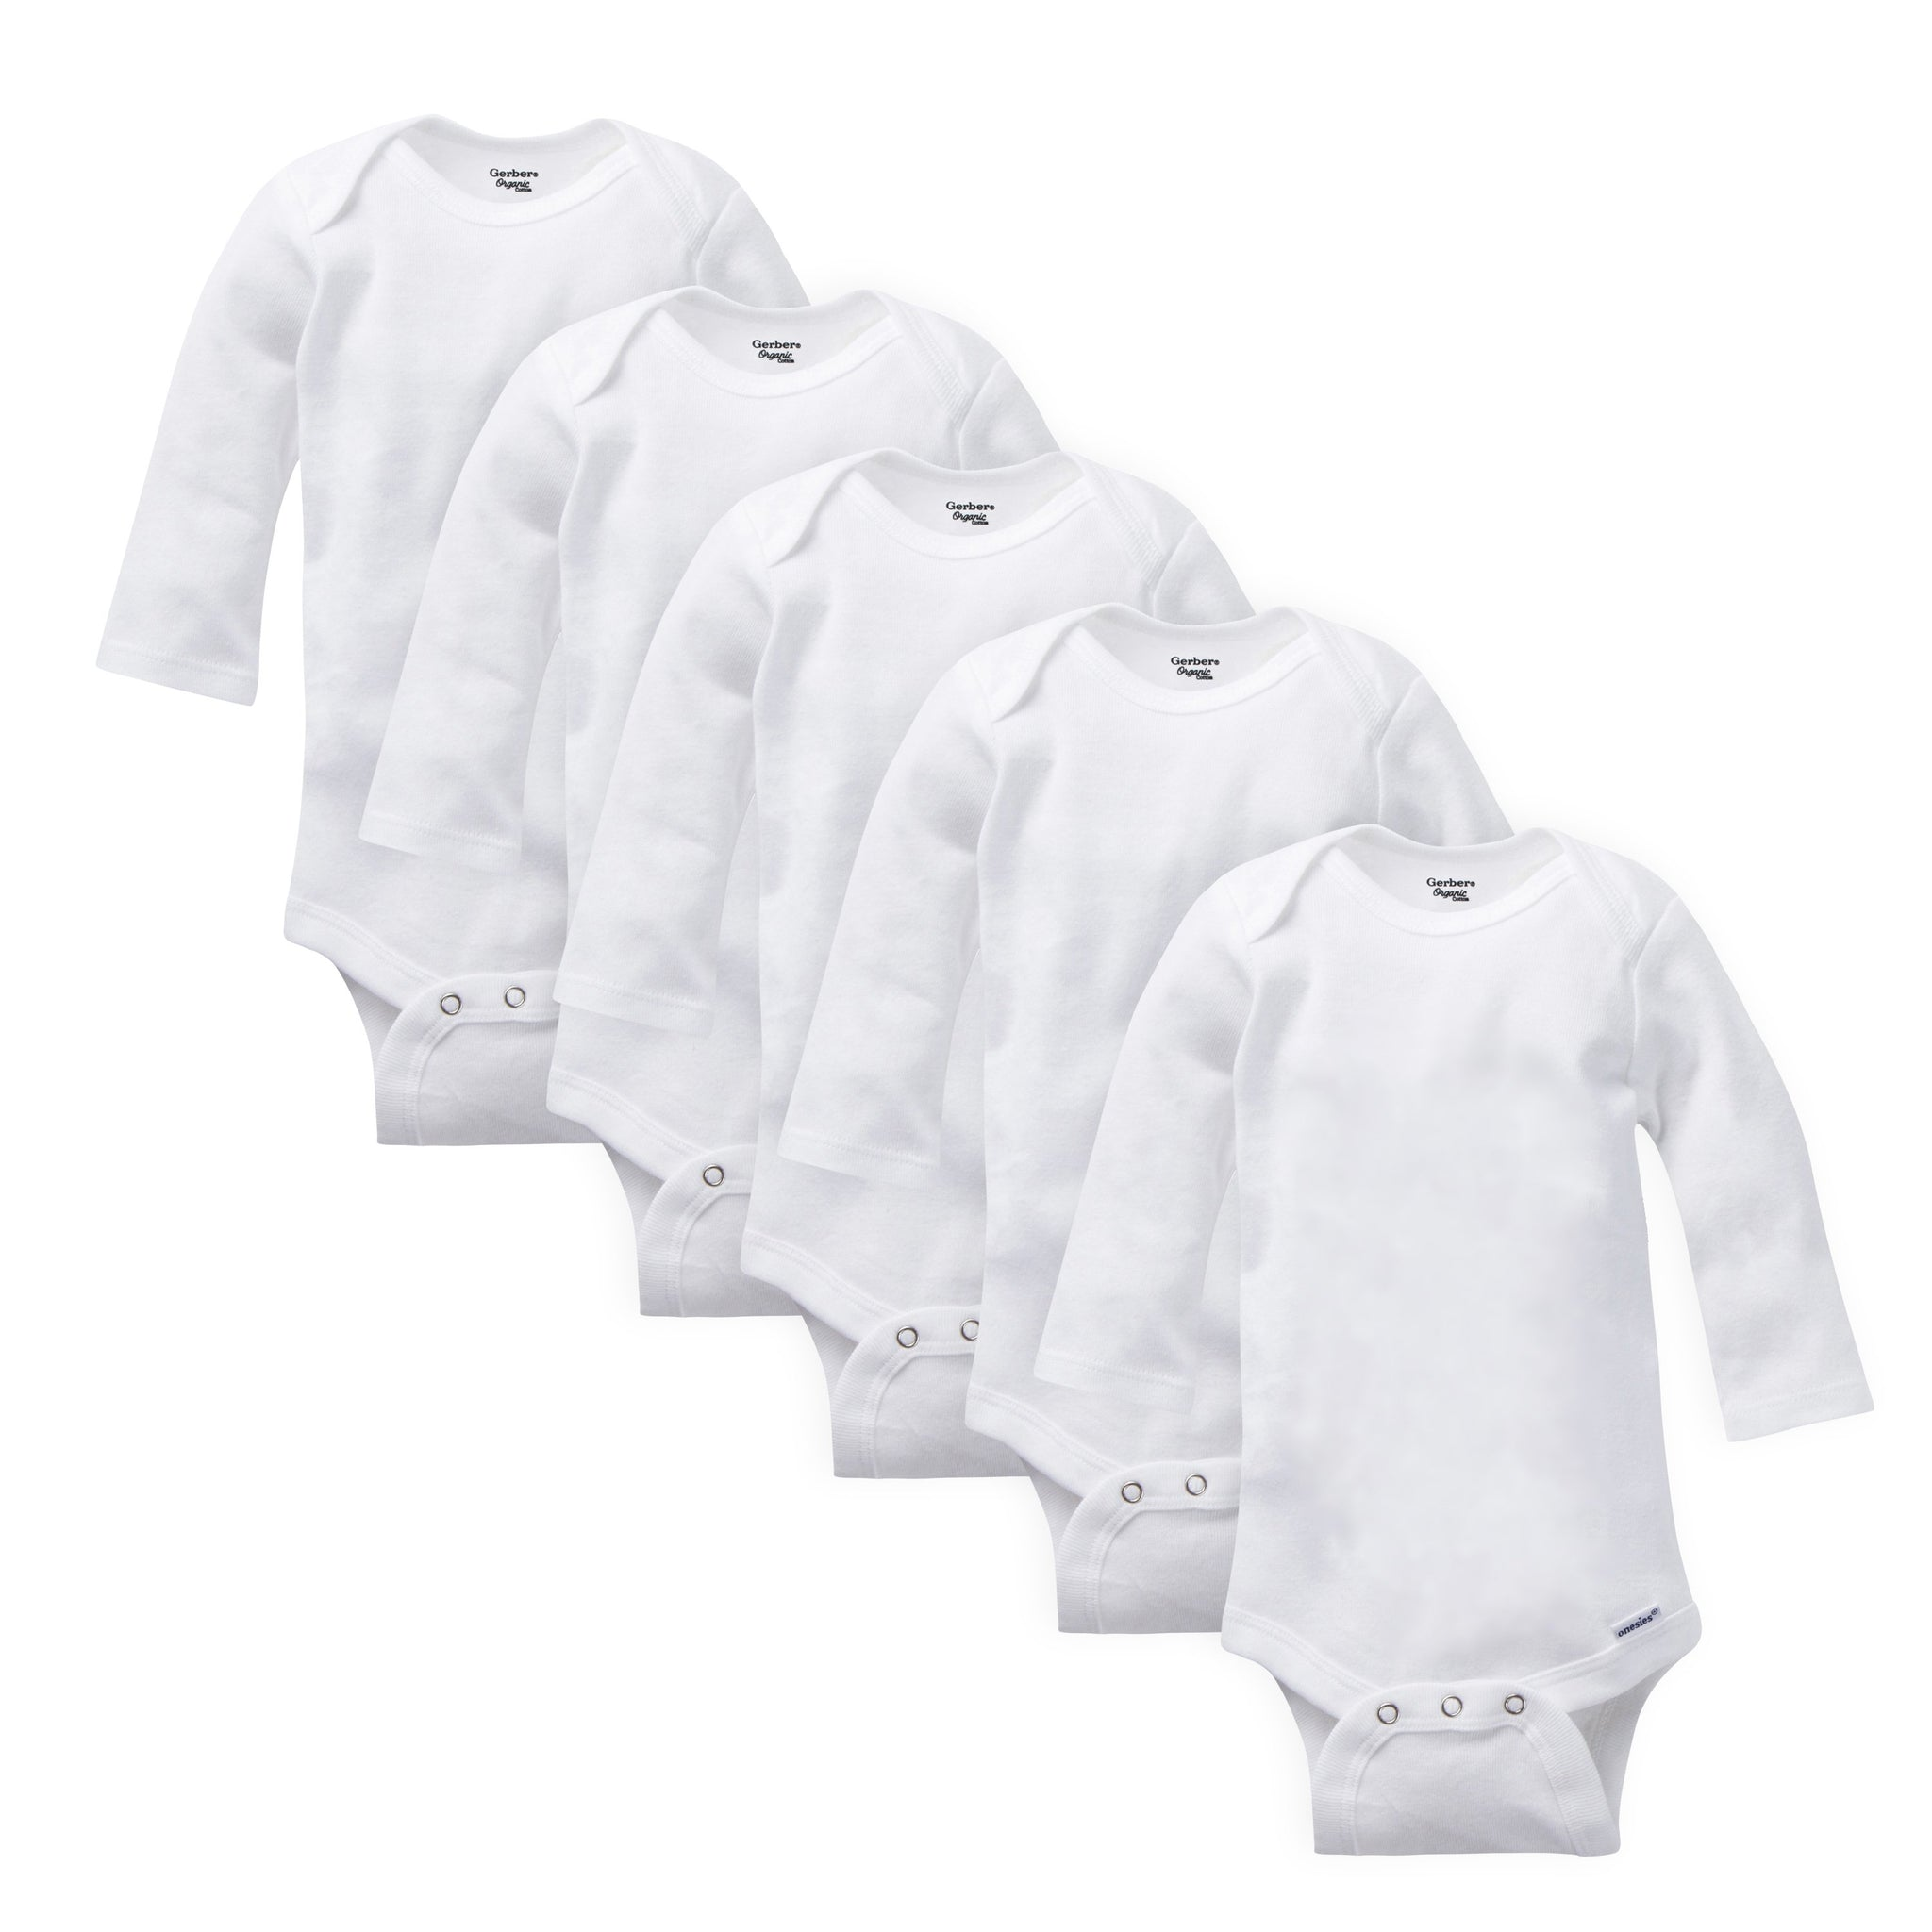 5-Pack White Organic Long-Sleeve Onesies Bodysuits